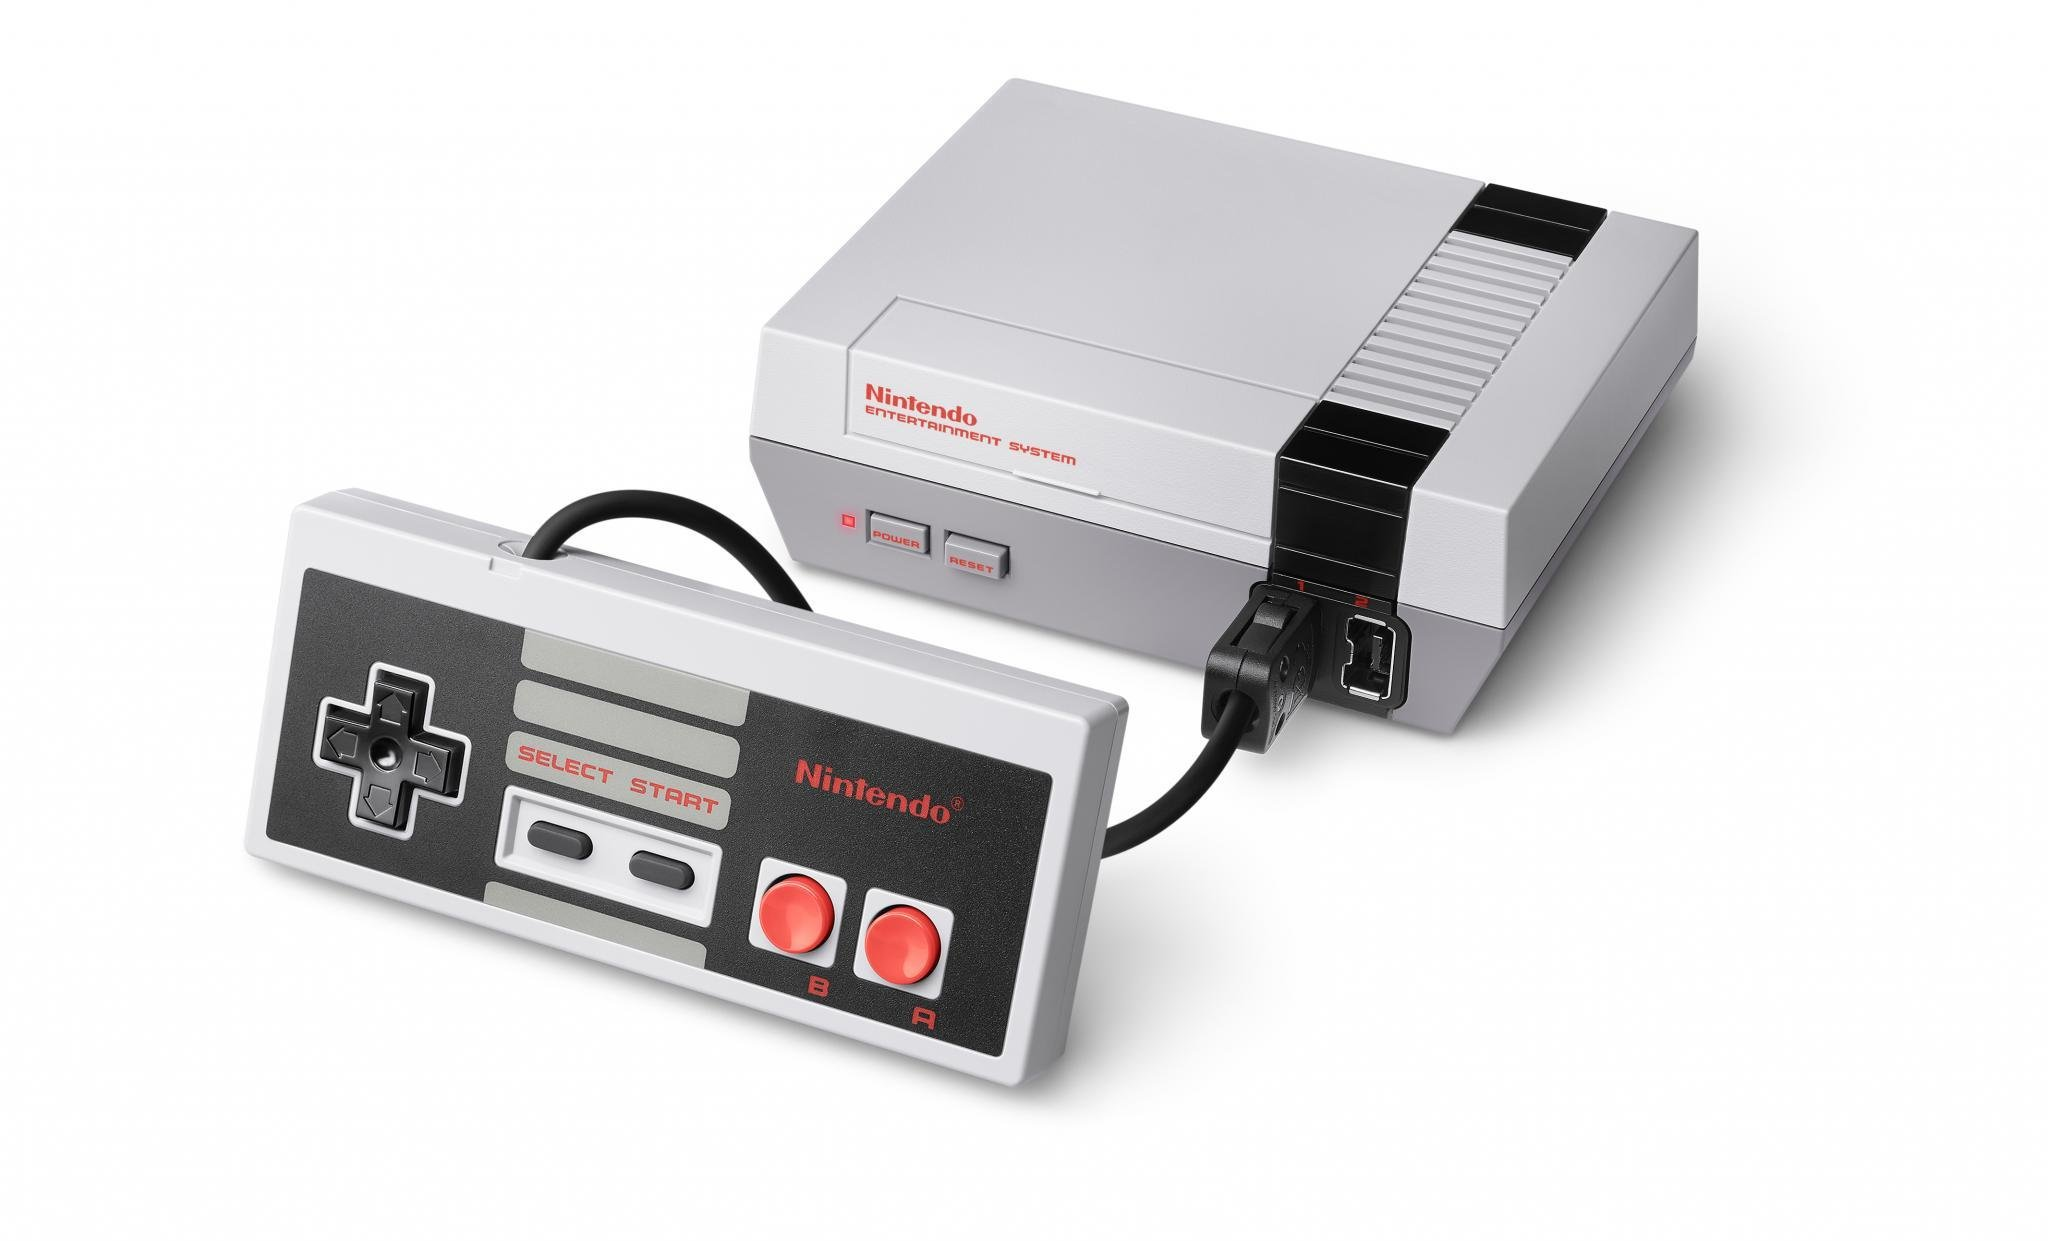 NES Classic Edition Nintendo Game System